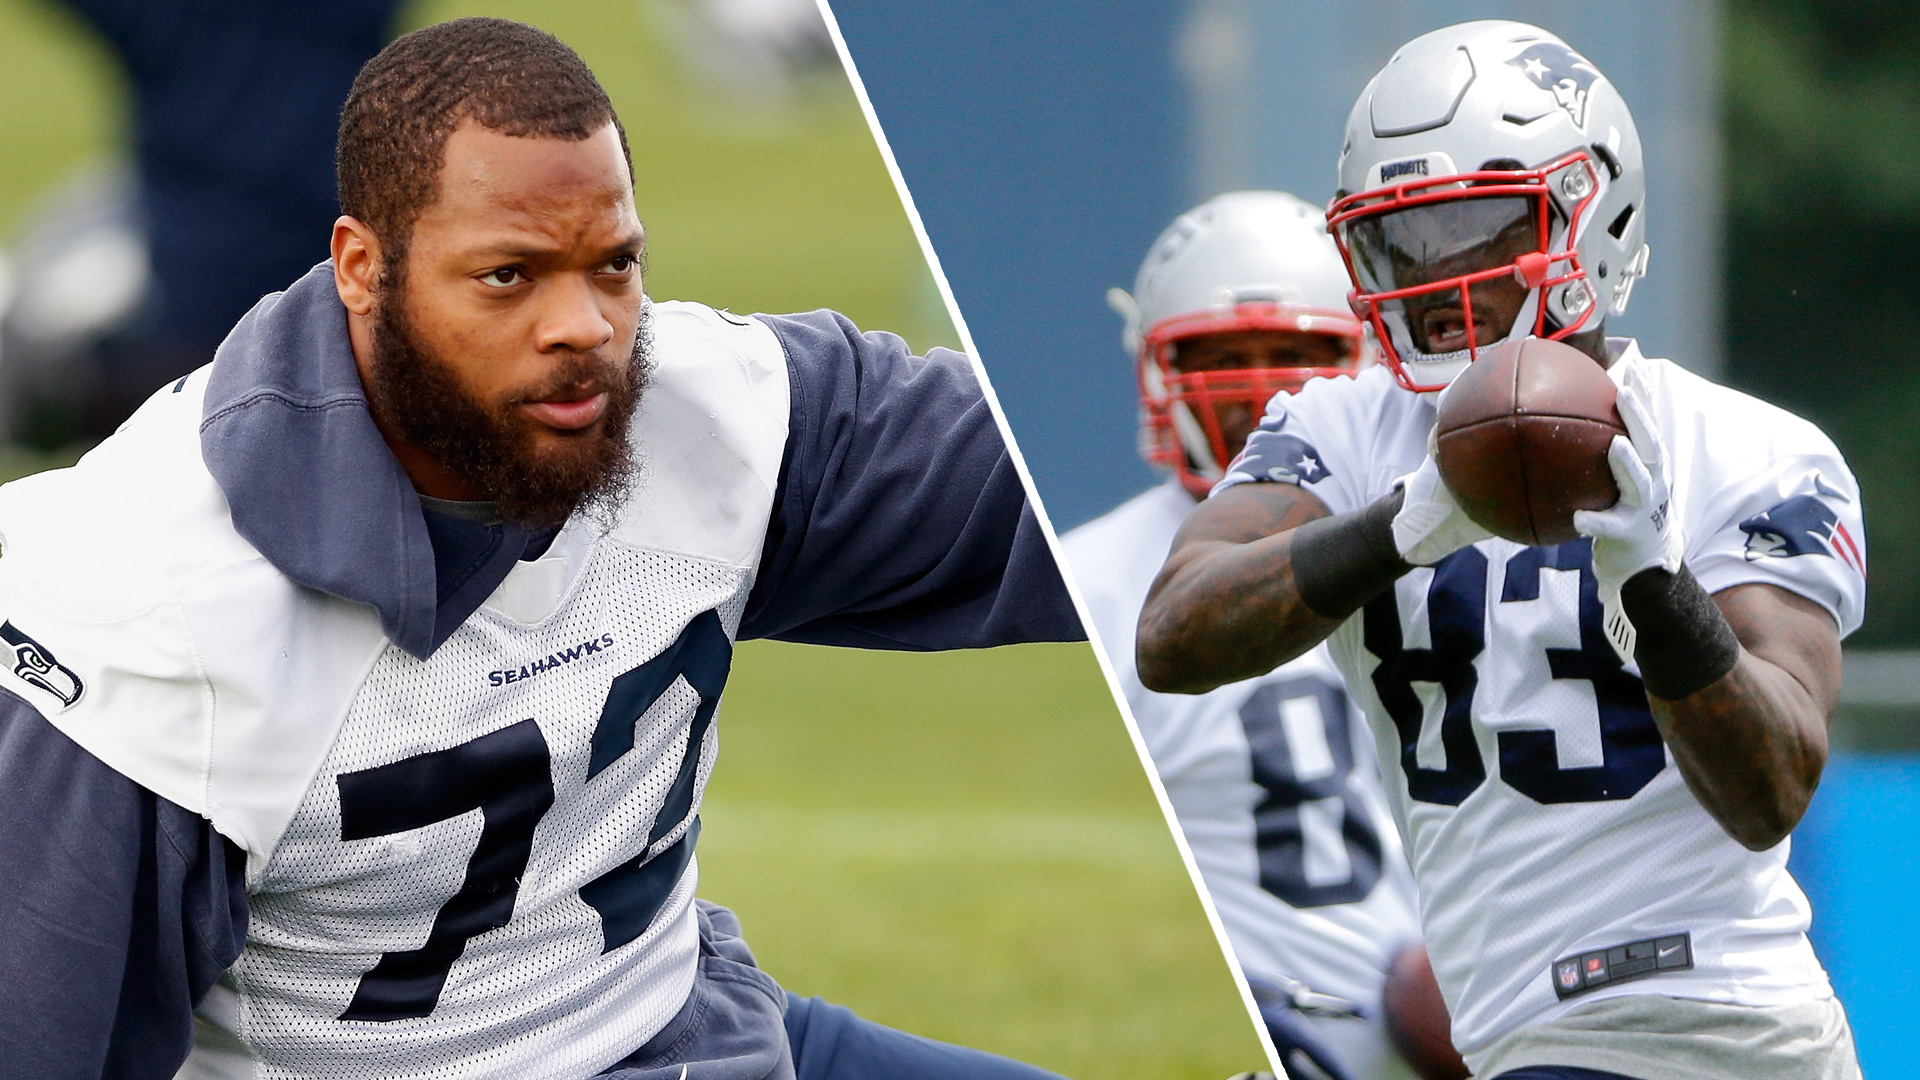 Sorry Currys but Martellus and Michael Bennett are still sports